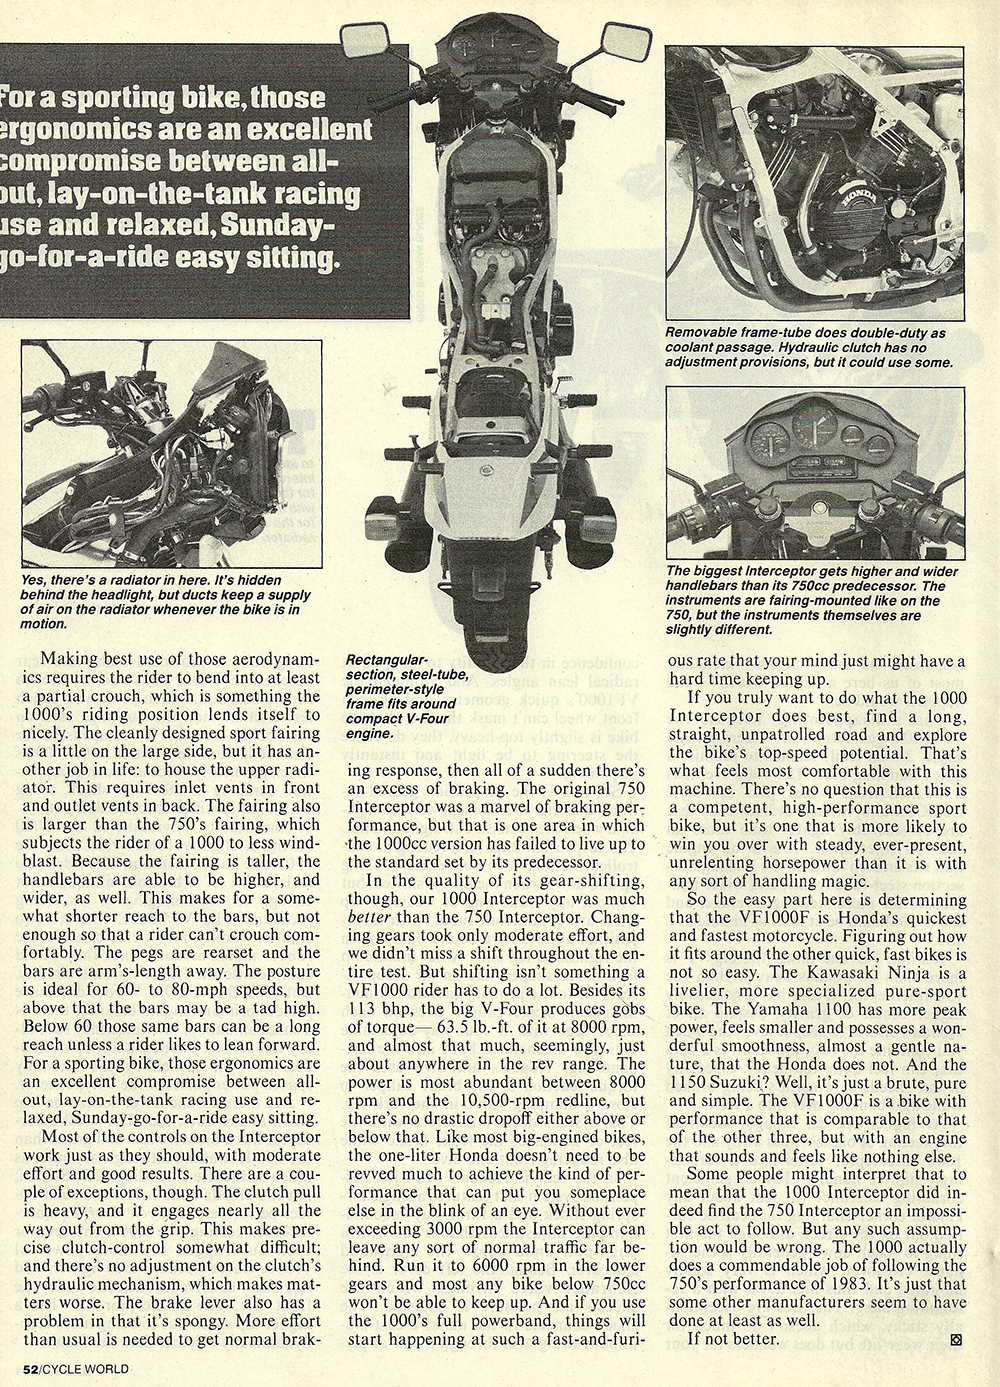 1984 Honda 1000 Interceptor 05.jpg